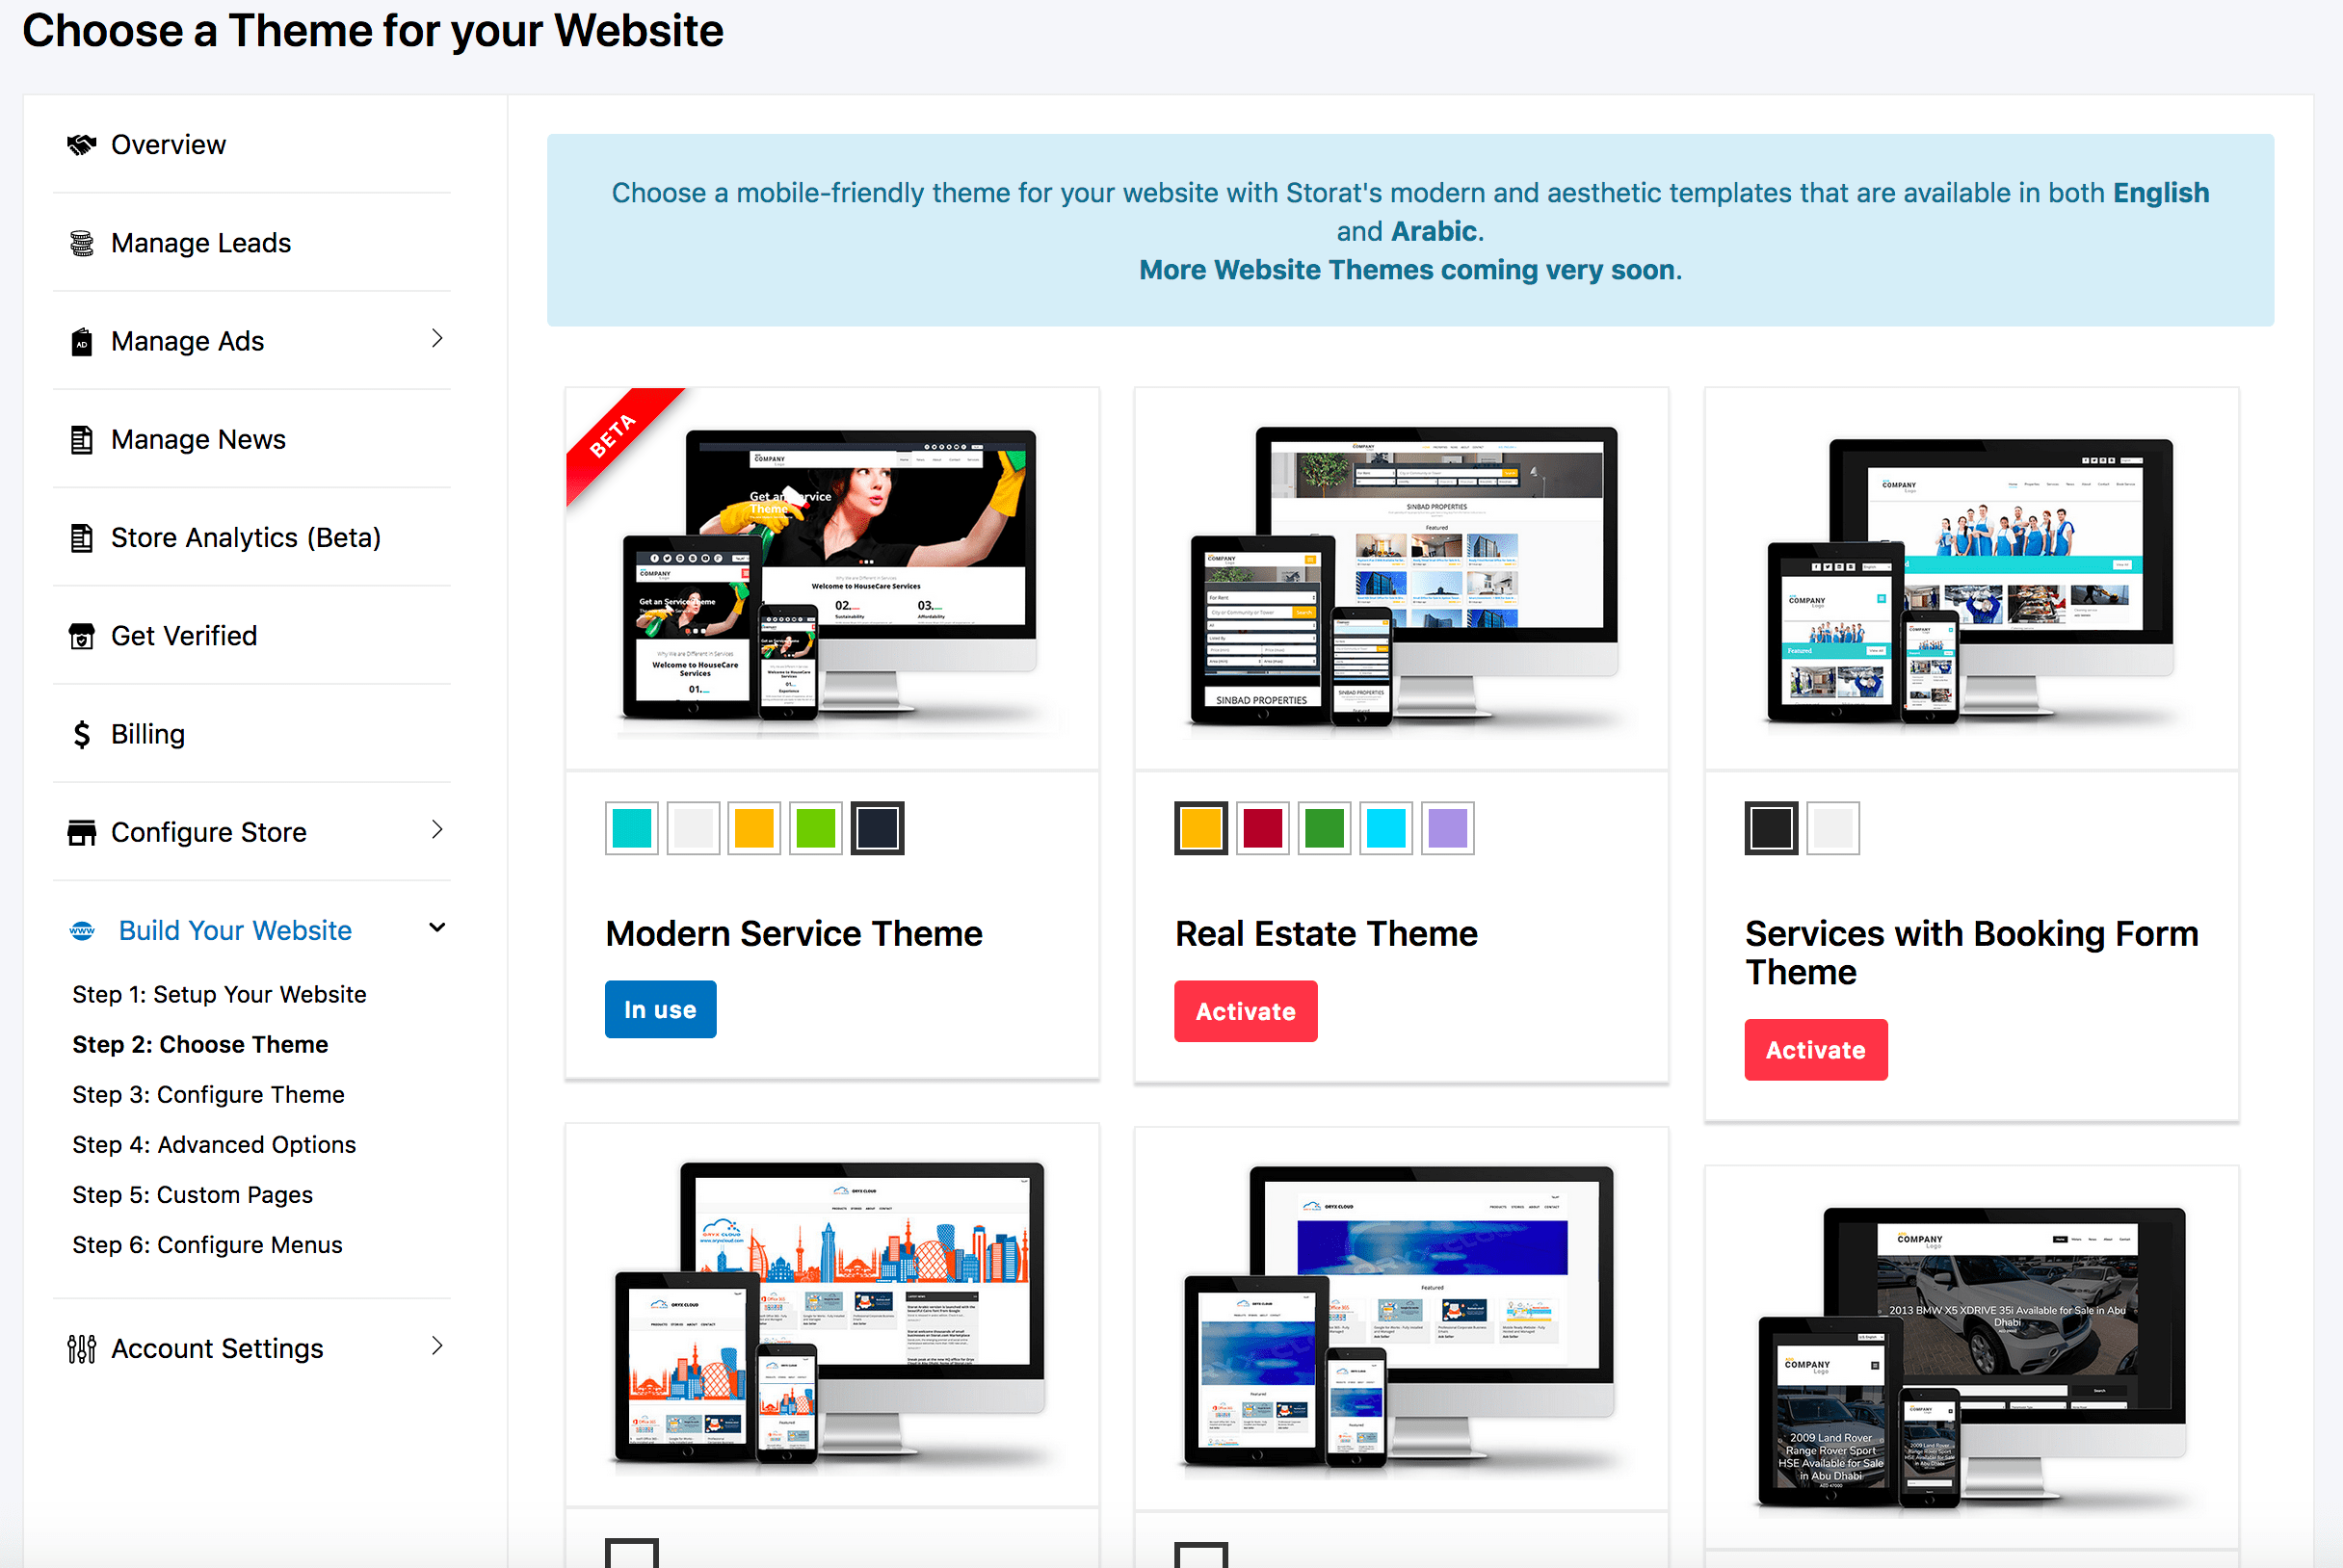 Choose website Theme